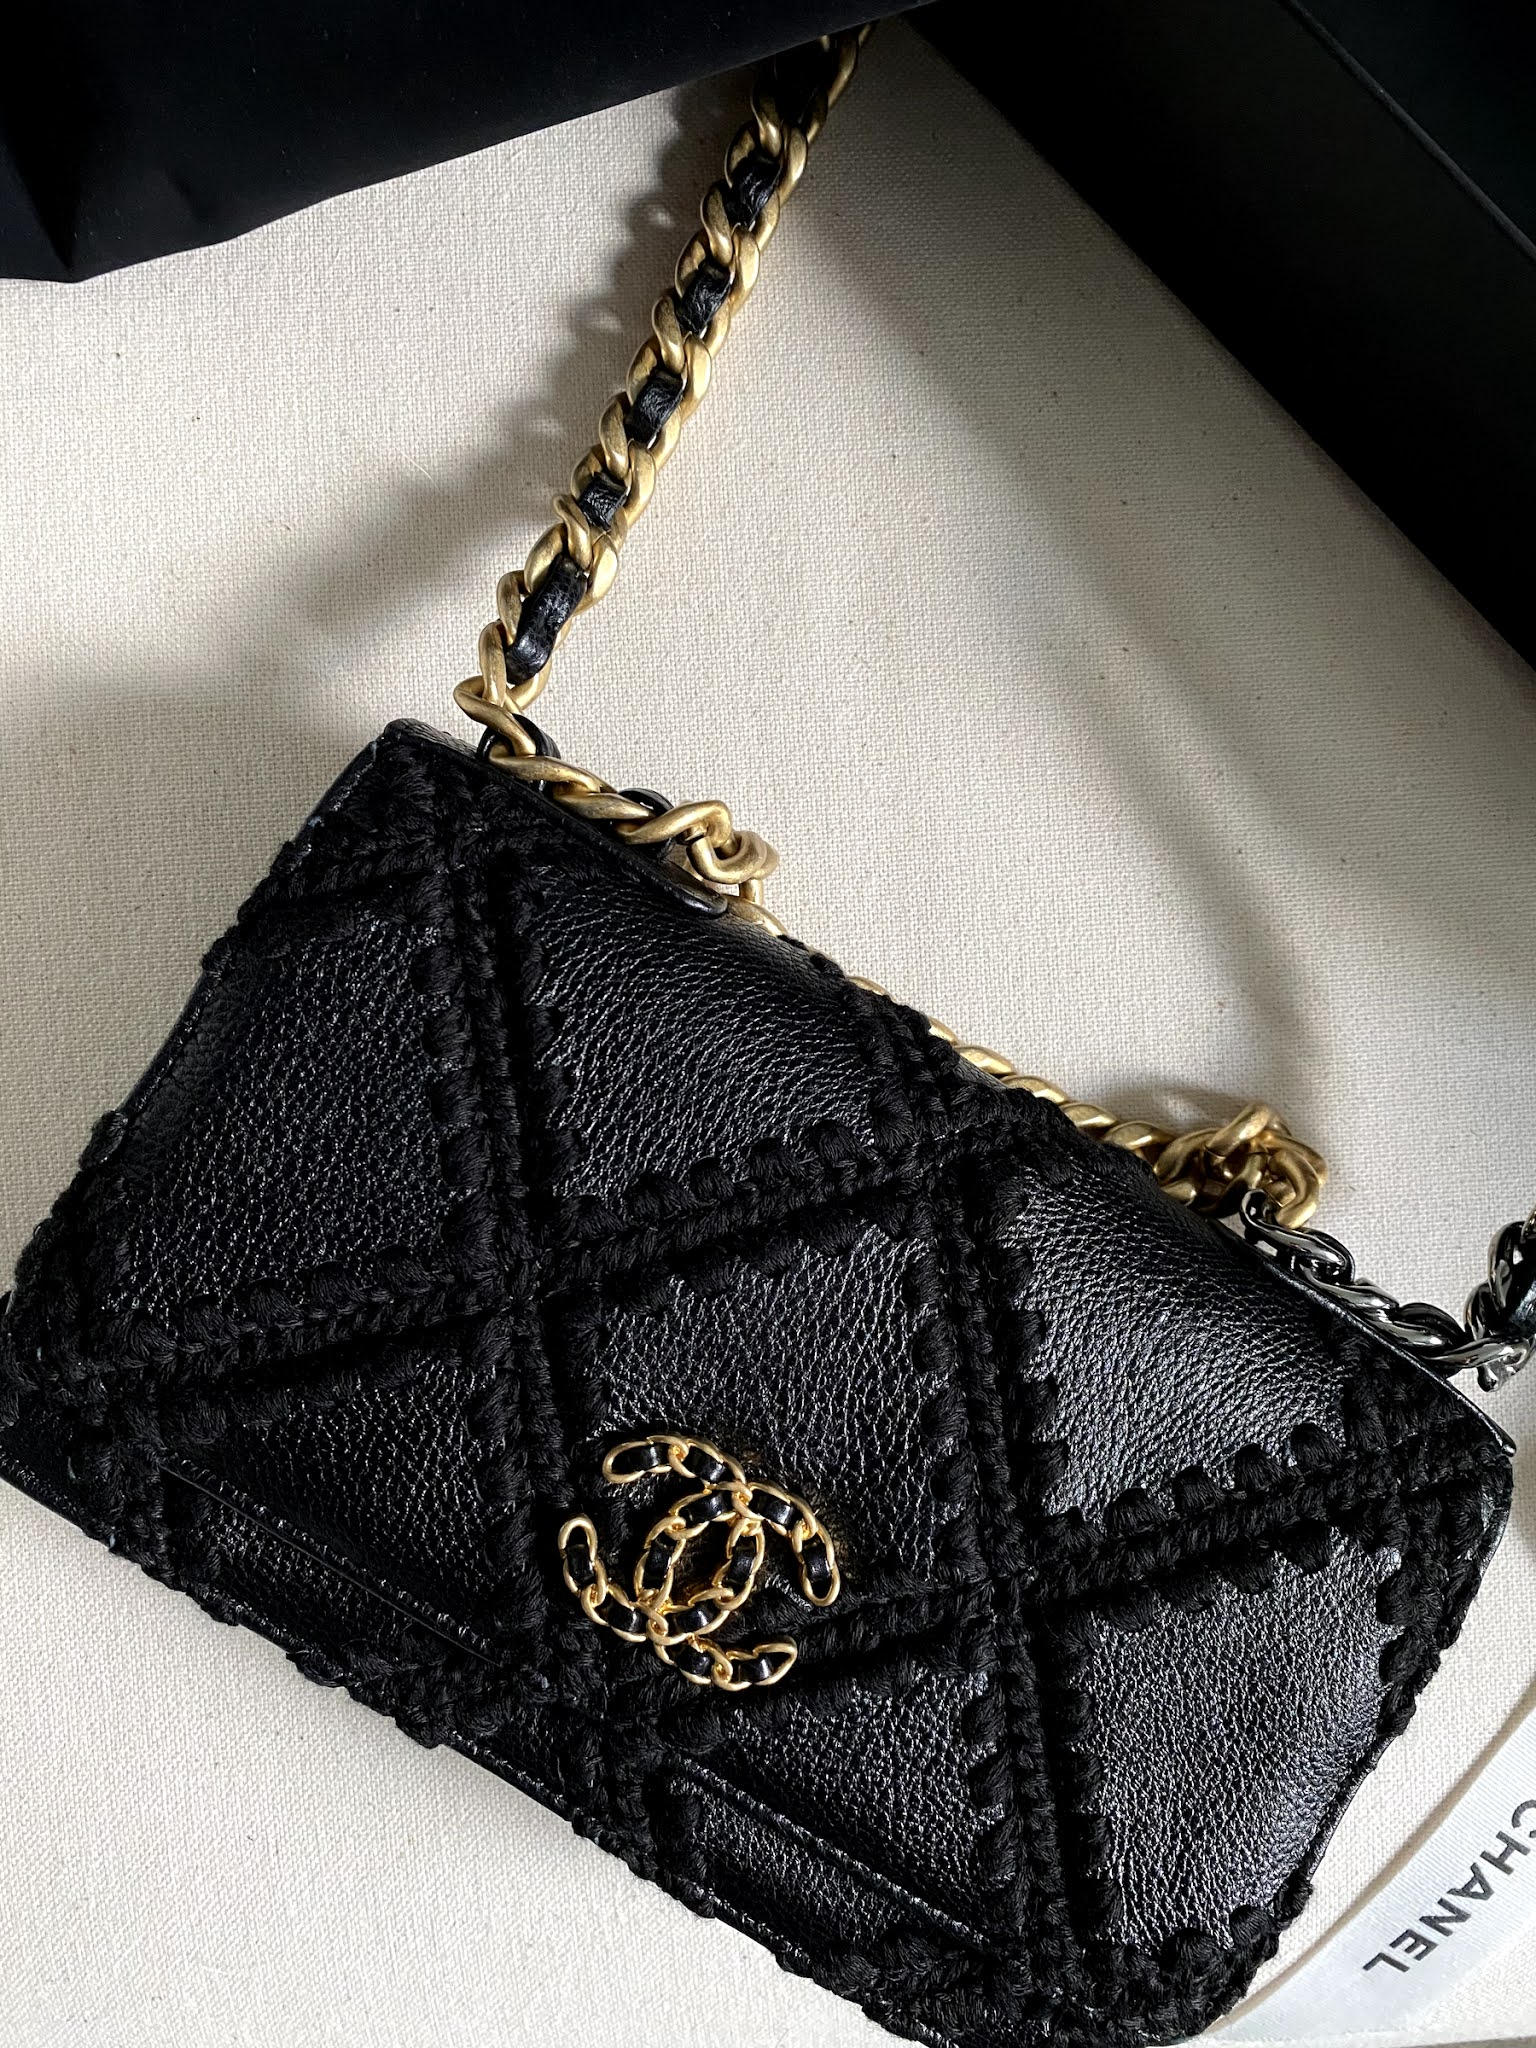 Chanel 19 wallet on a chain: A quick review